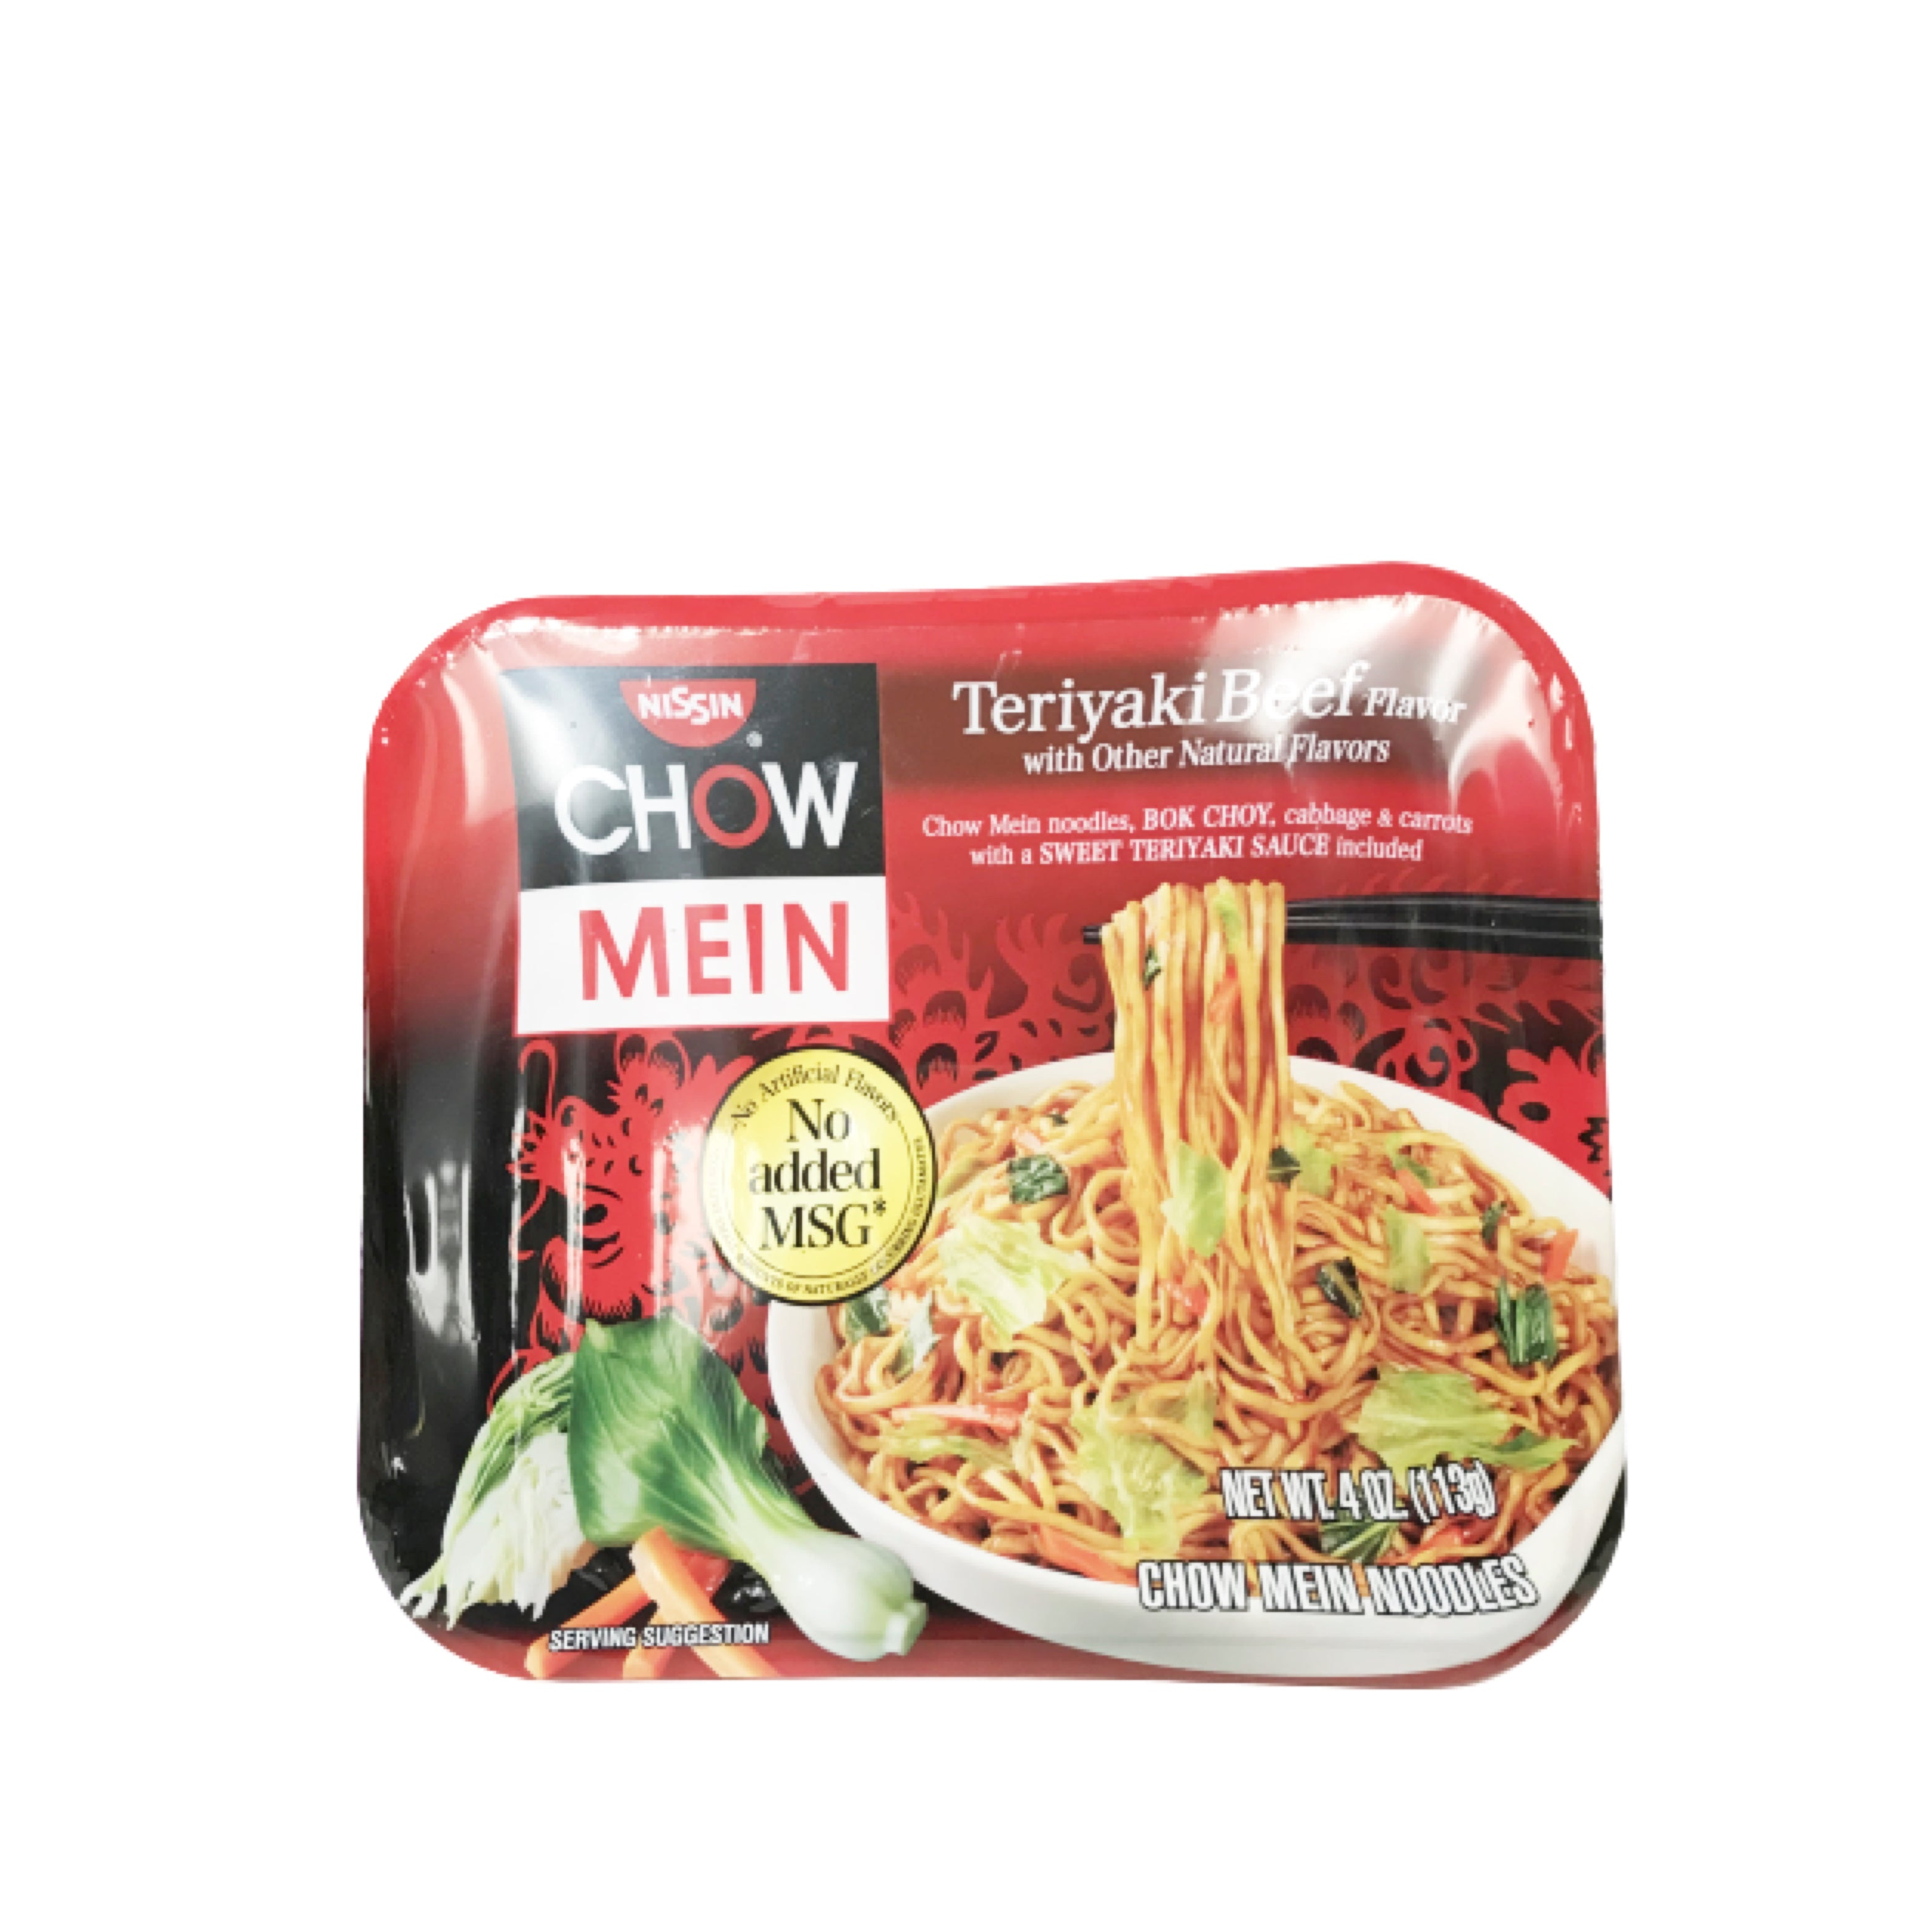 Nissin Chow Mein Bowl Noodle Teriyaki Beef Flavor